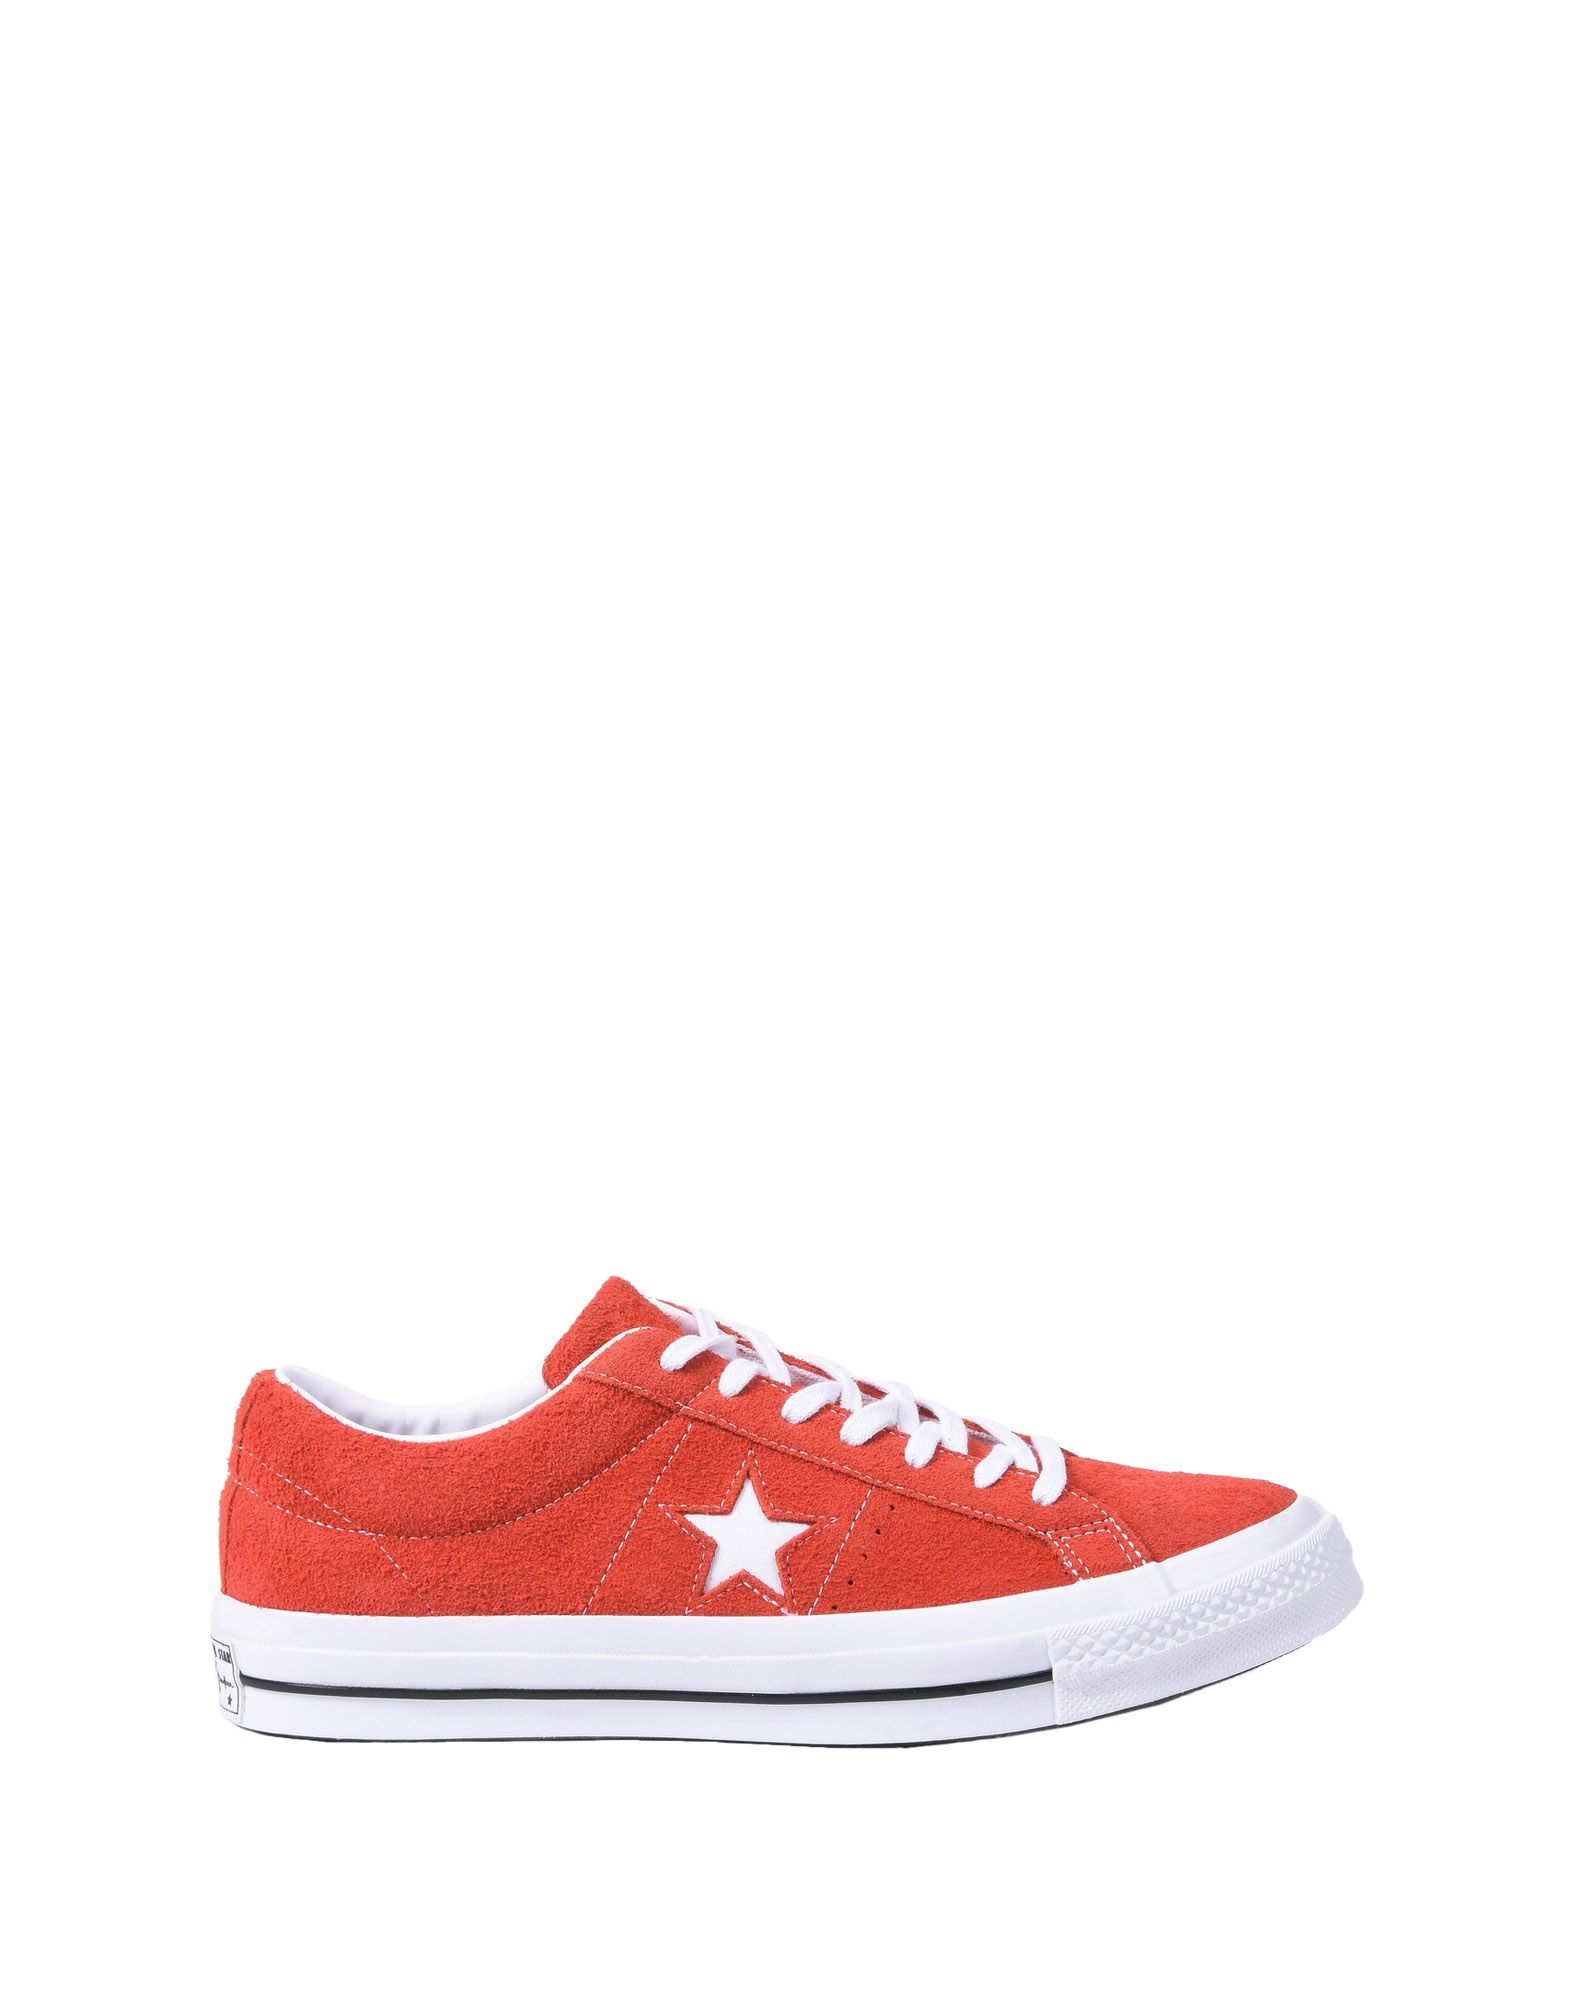 Sneakers Converse All Star One Star Ox Premium Suede - Homme - Sneakers Converse All Star sur